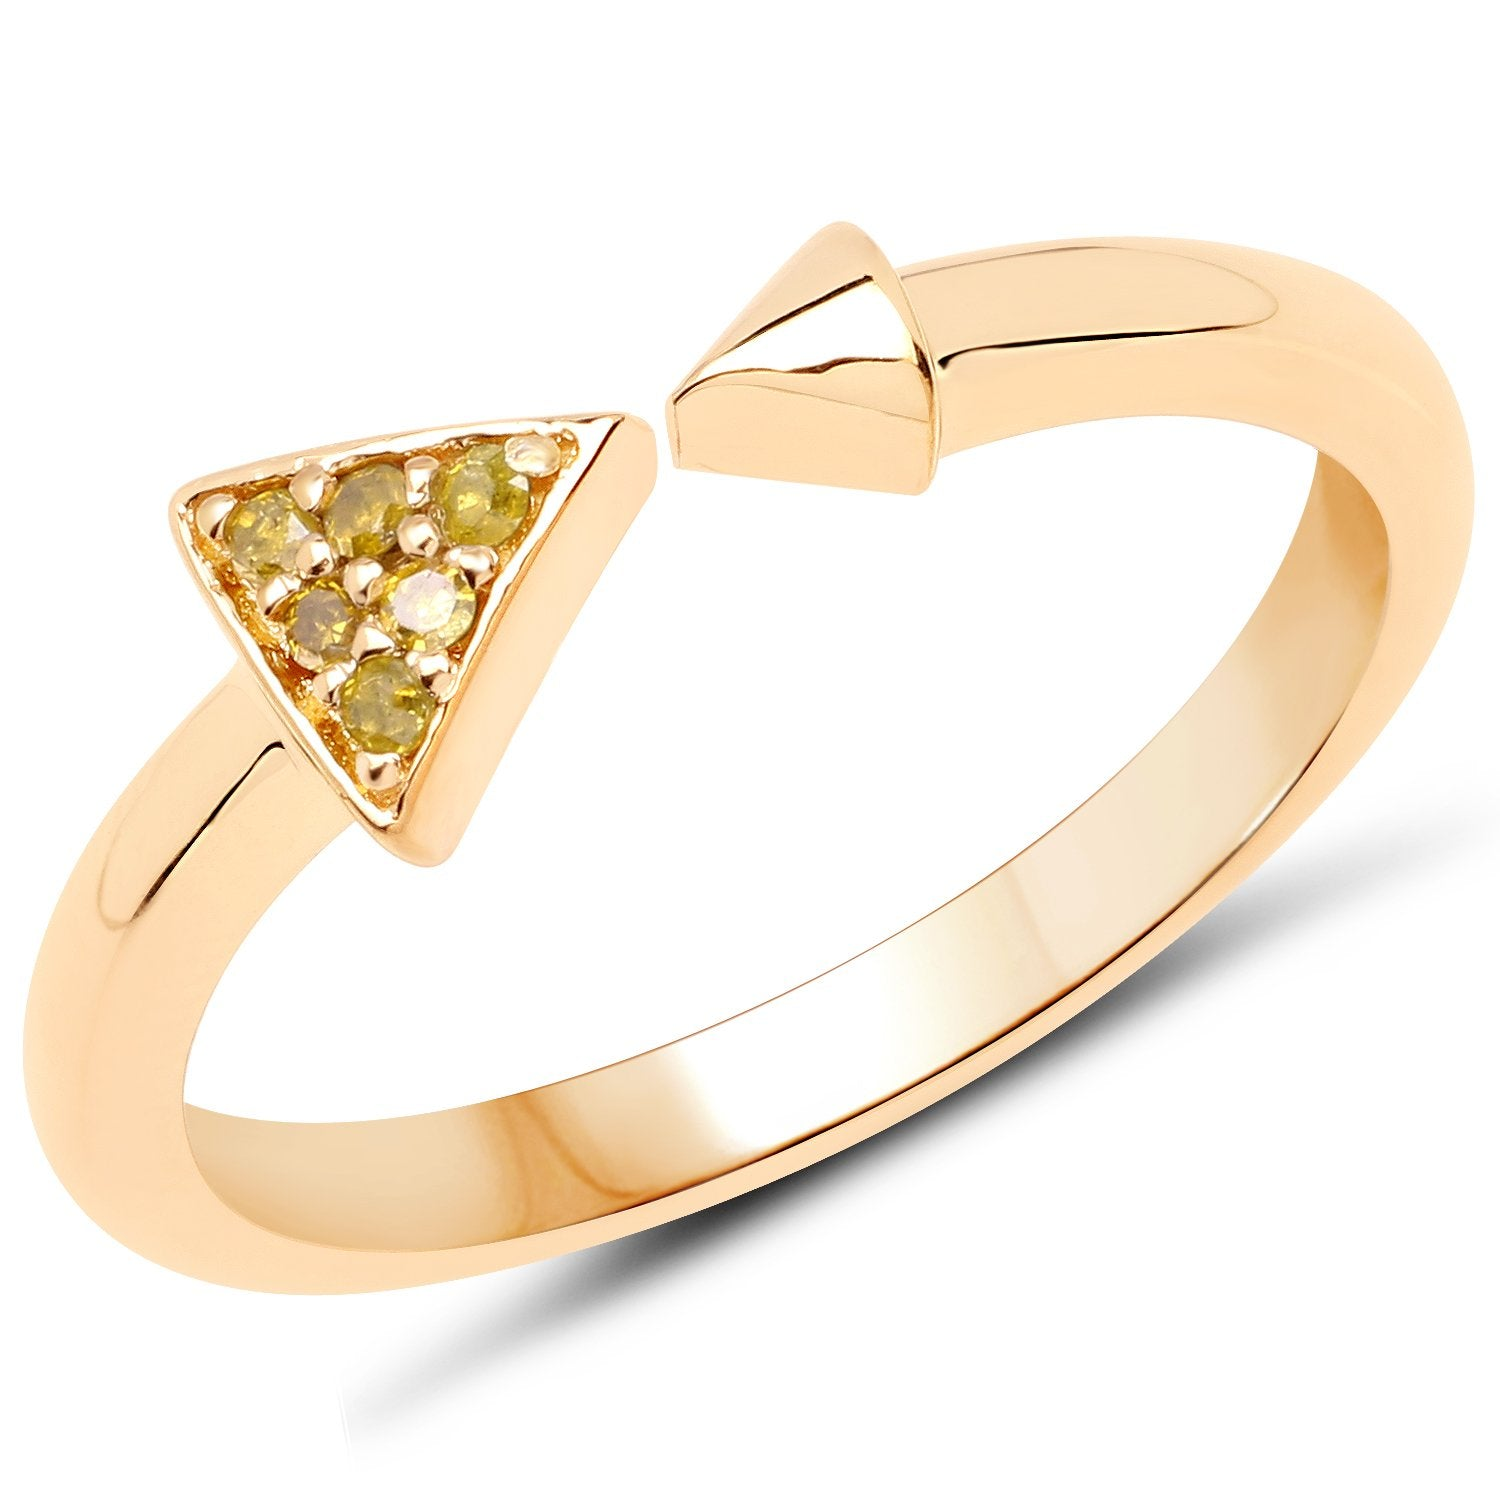 LoveHuang 0.04 Carats Genuine Yellow Diamond (I-J, I2-I3) Arrow Ring Solid .925 Sterling Silver With 18KT Yellow Gold Plating